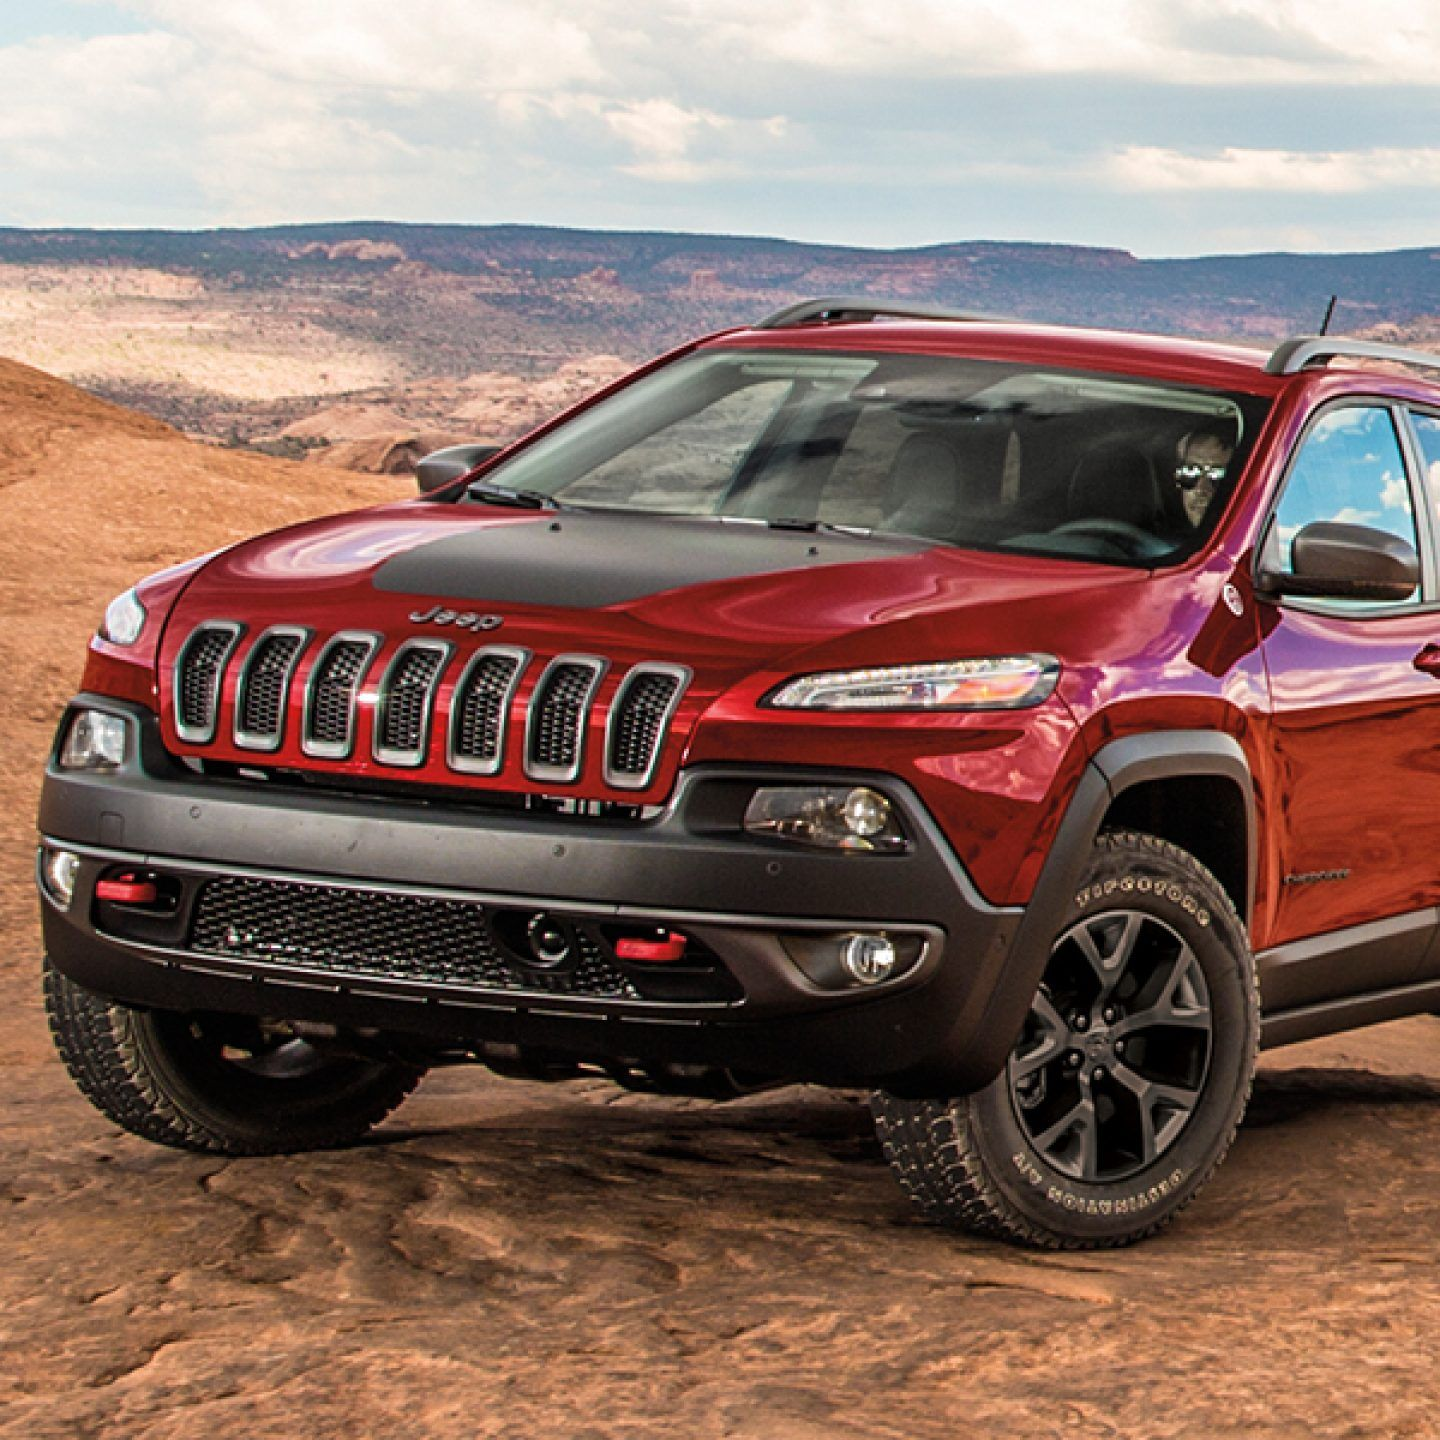 Jeep Cherokee 2017 Trailhawk froading and Heavy Daily Driver